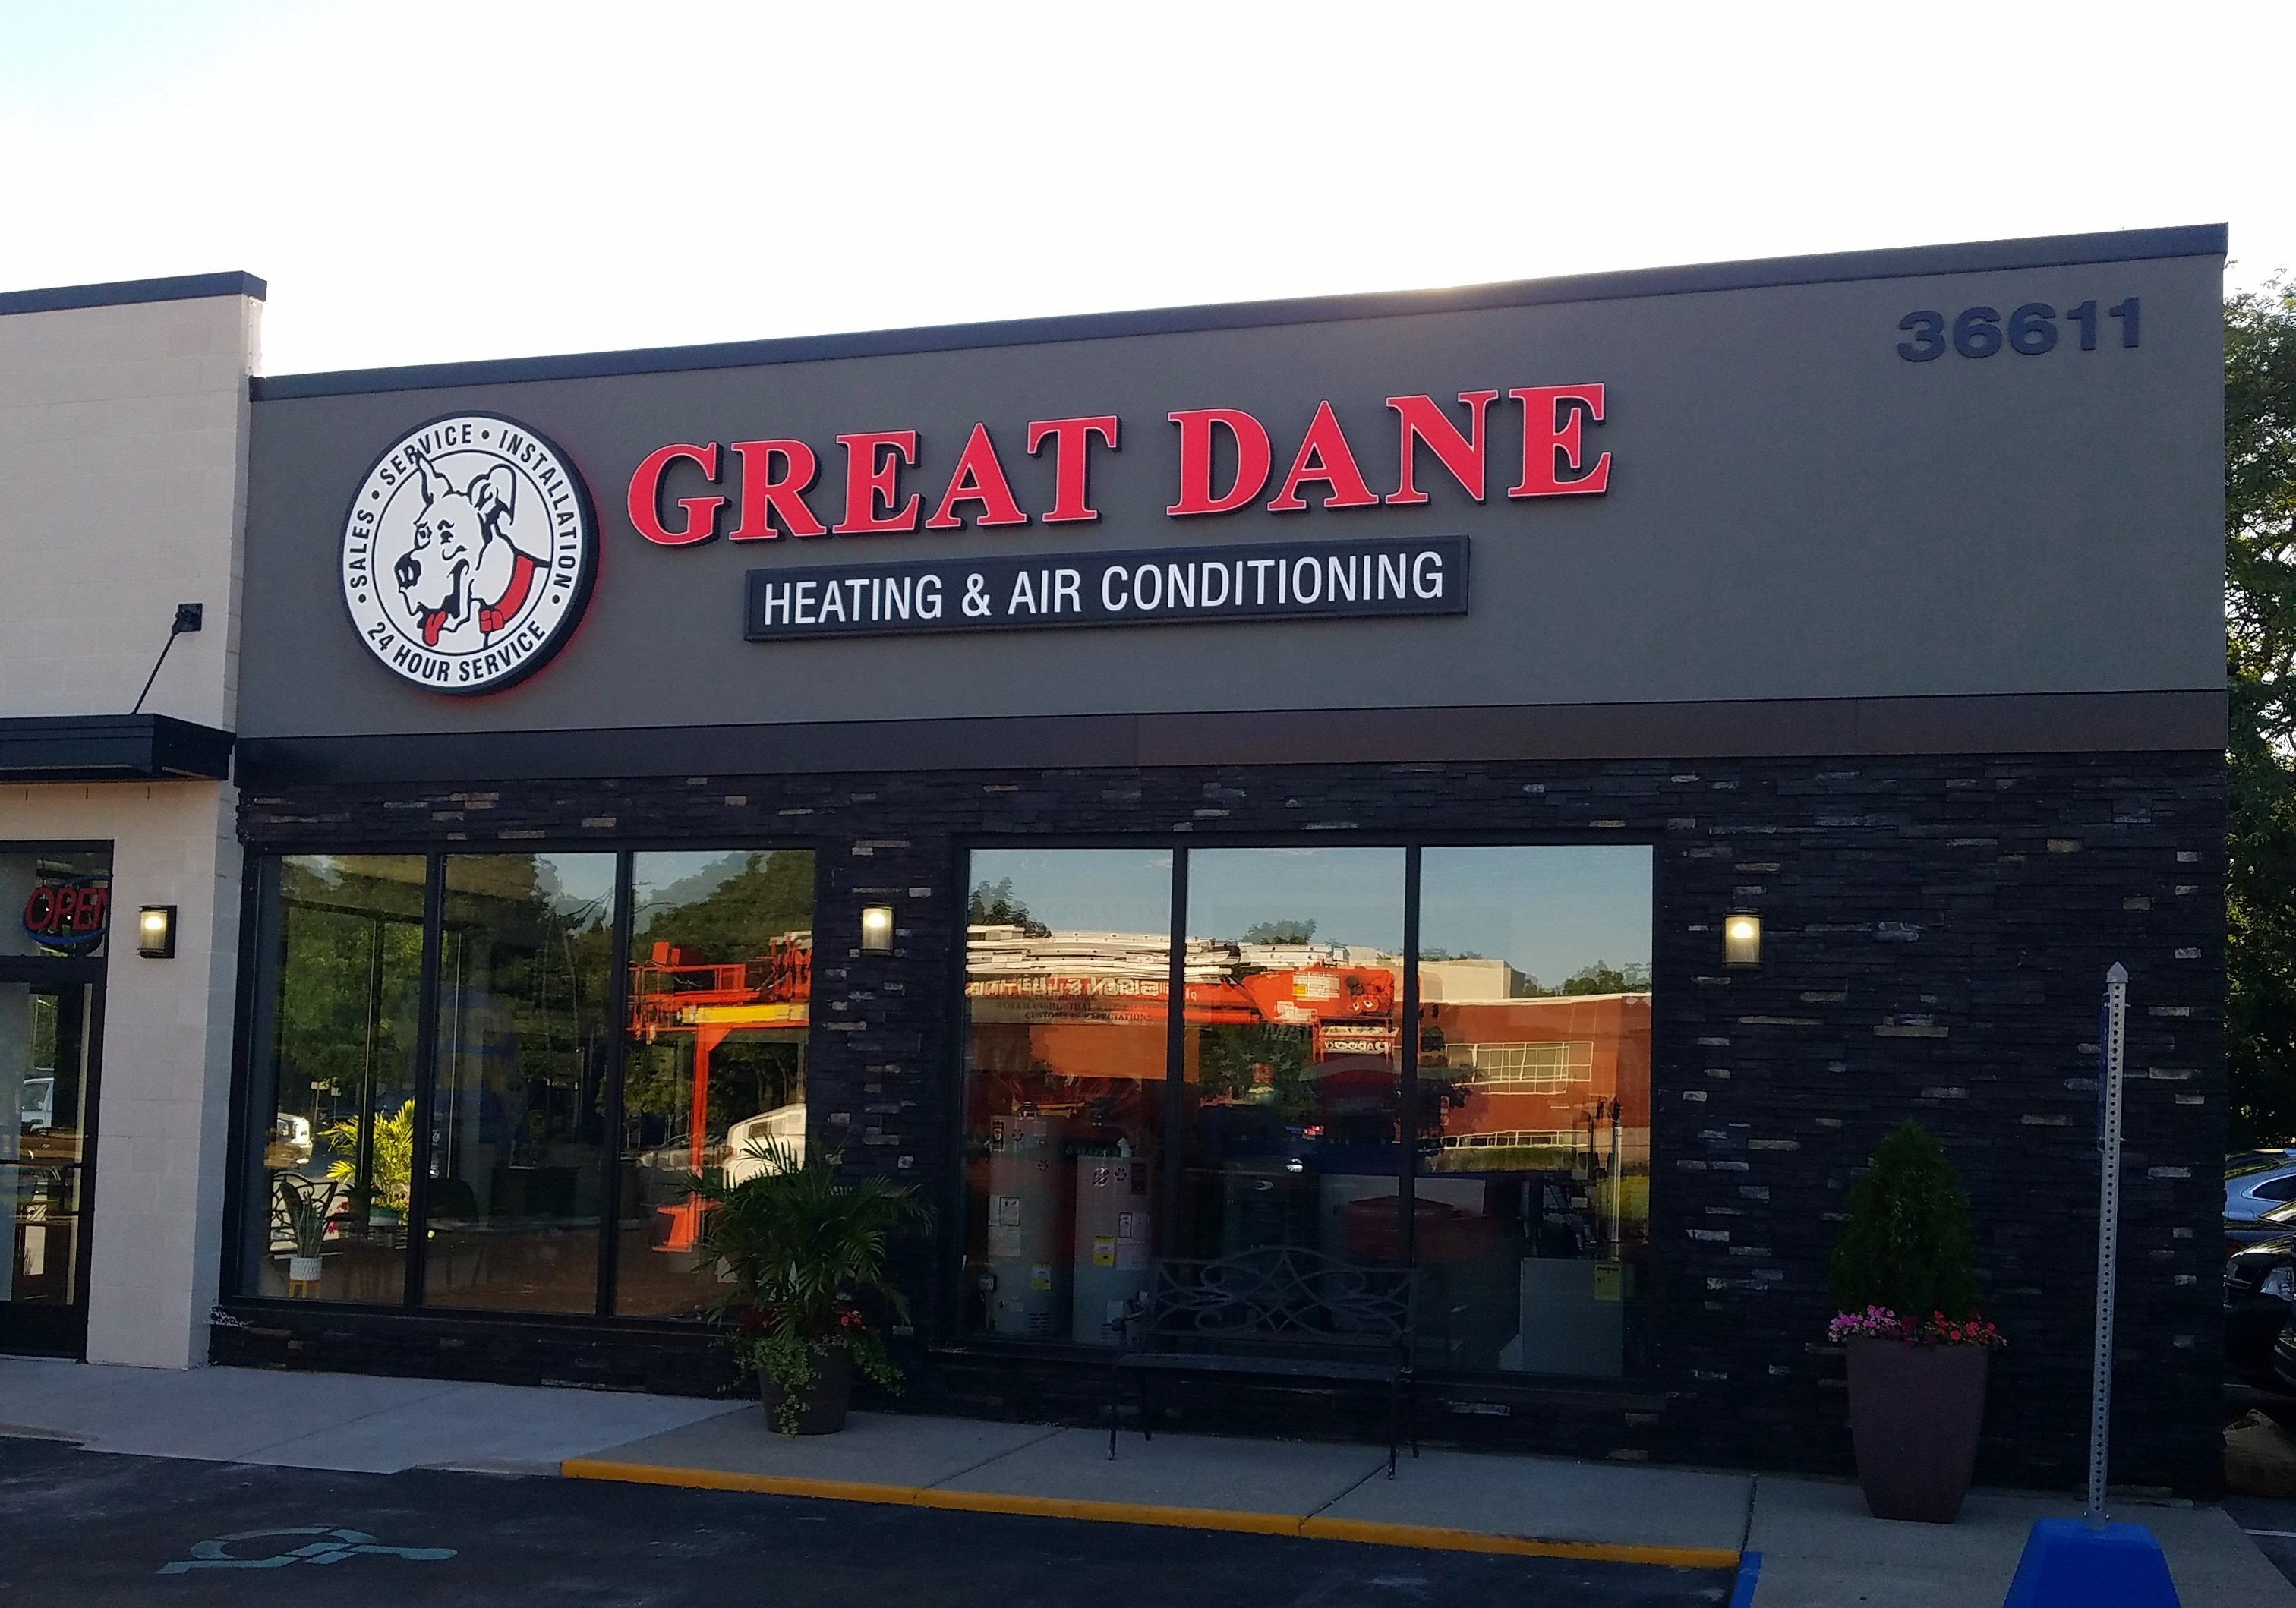 Great Dane Heating & Air Conditioning - Clinton Township